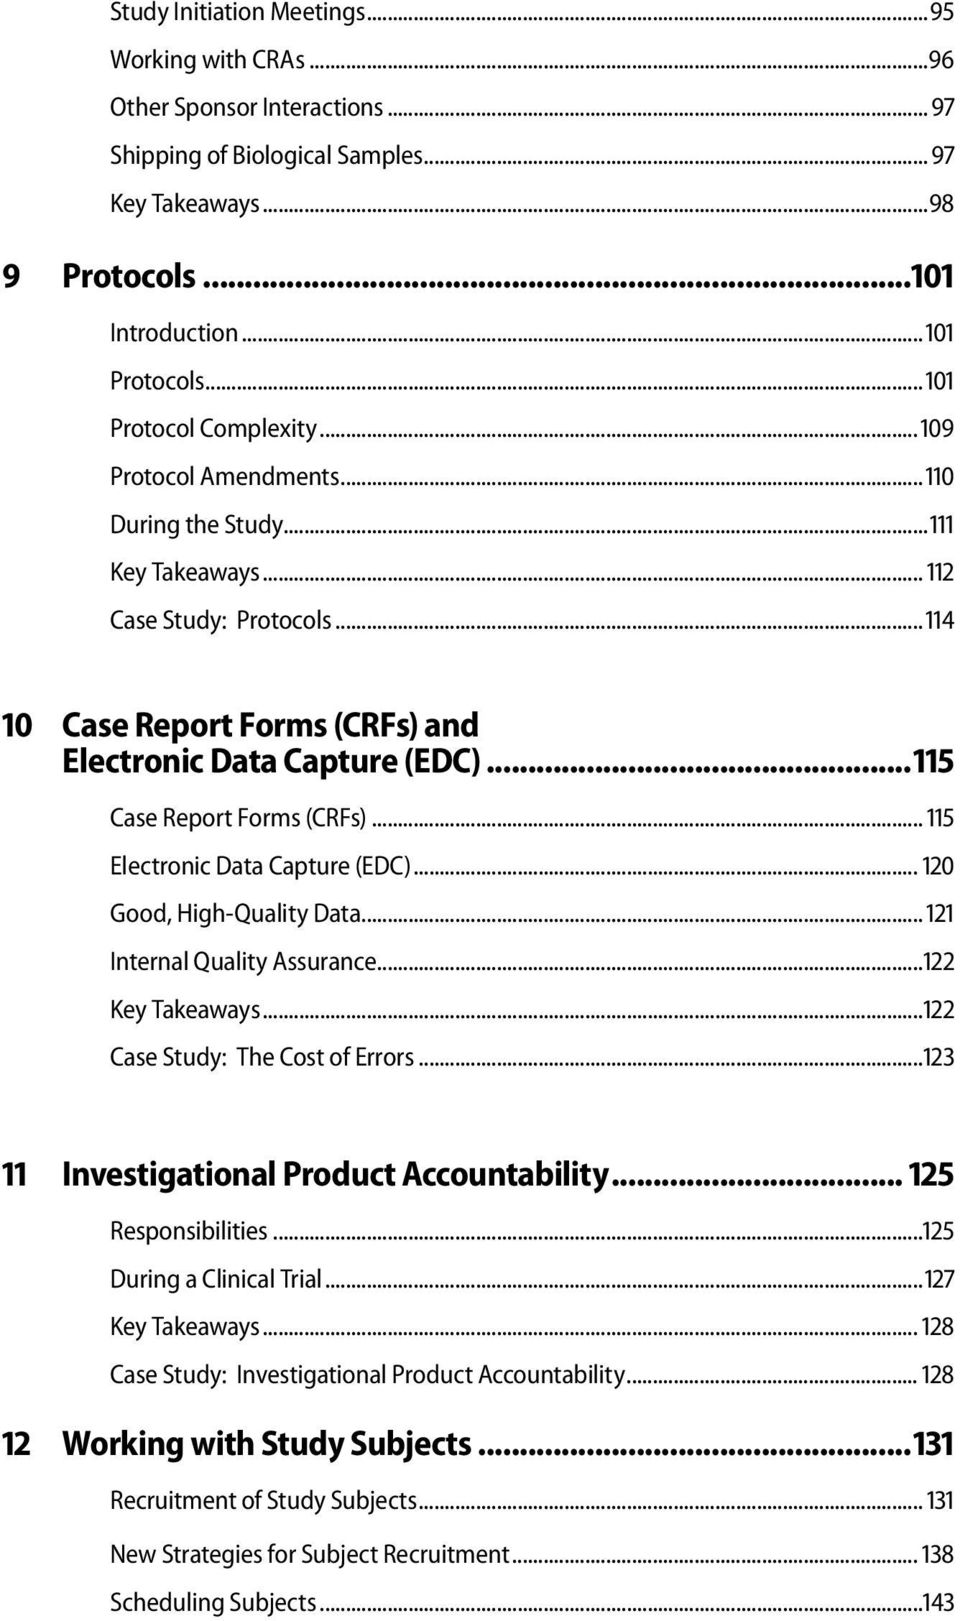 ..115 Case Report Forms (CRFs)... 115 Electronic Data Capture (EDC)... 120 Good, High-Quality Data... 121 Internal Quality Assurance...122 Key Takeaways...122 Case Study: The Cost of Errors.